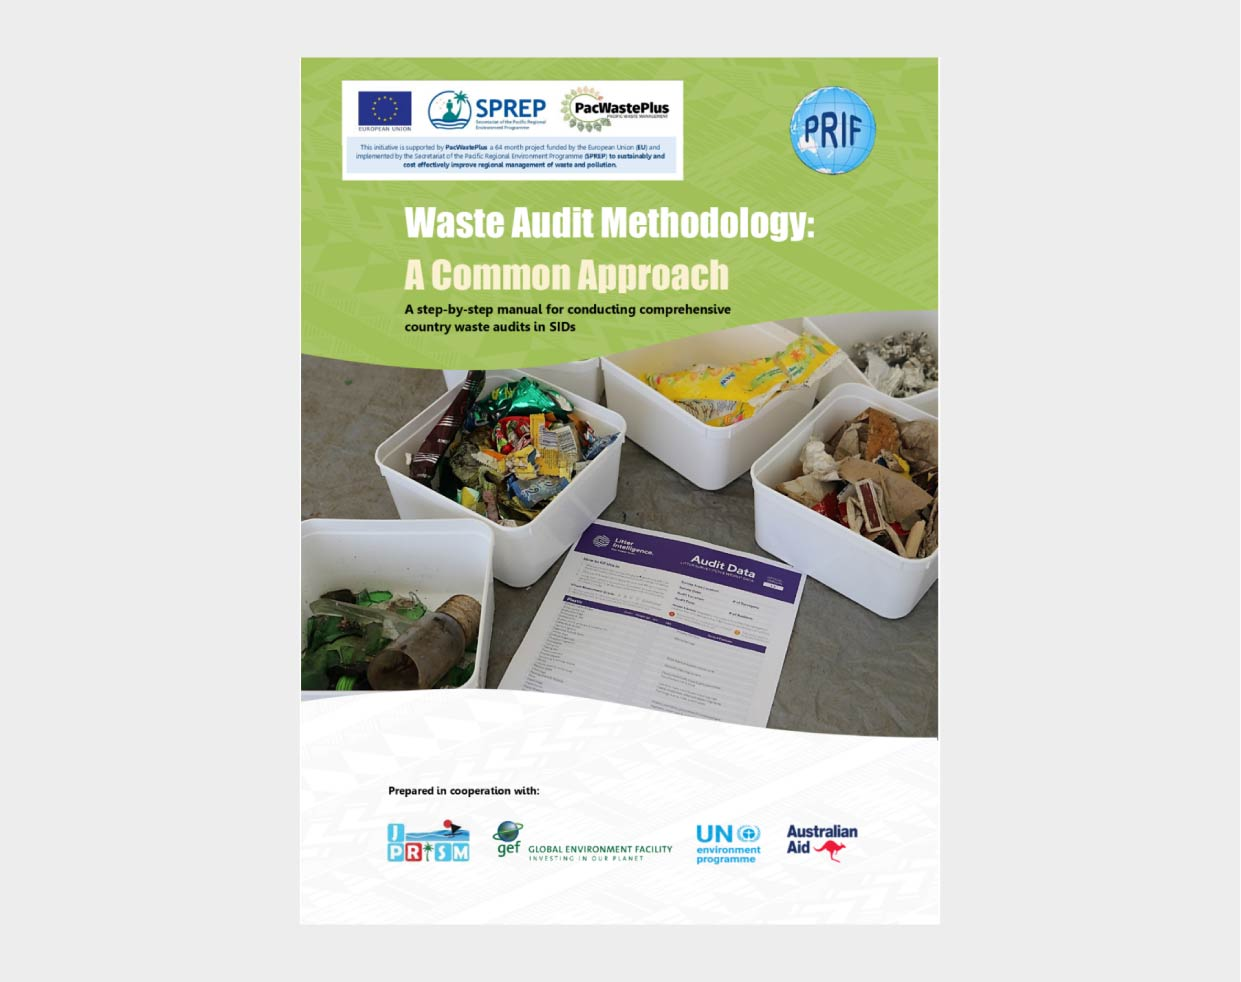 Waste Audit Methodology - A Common Approach